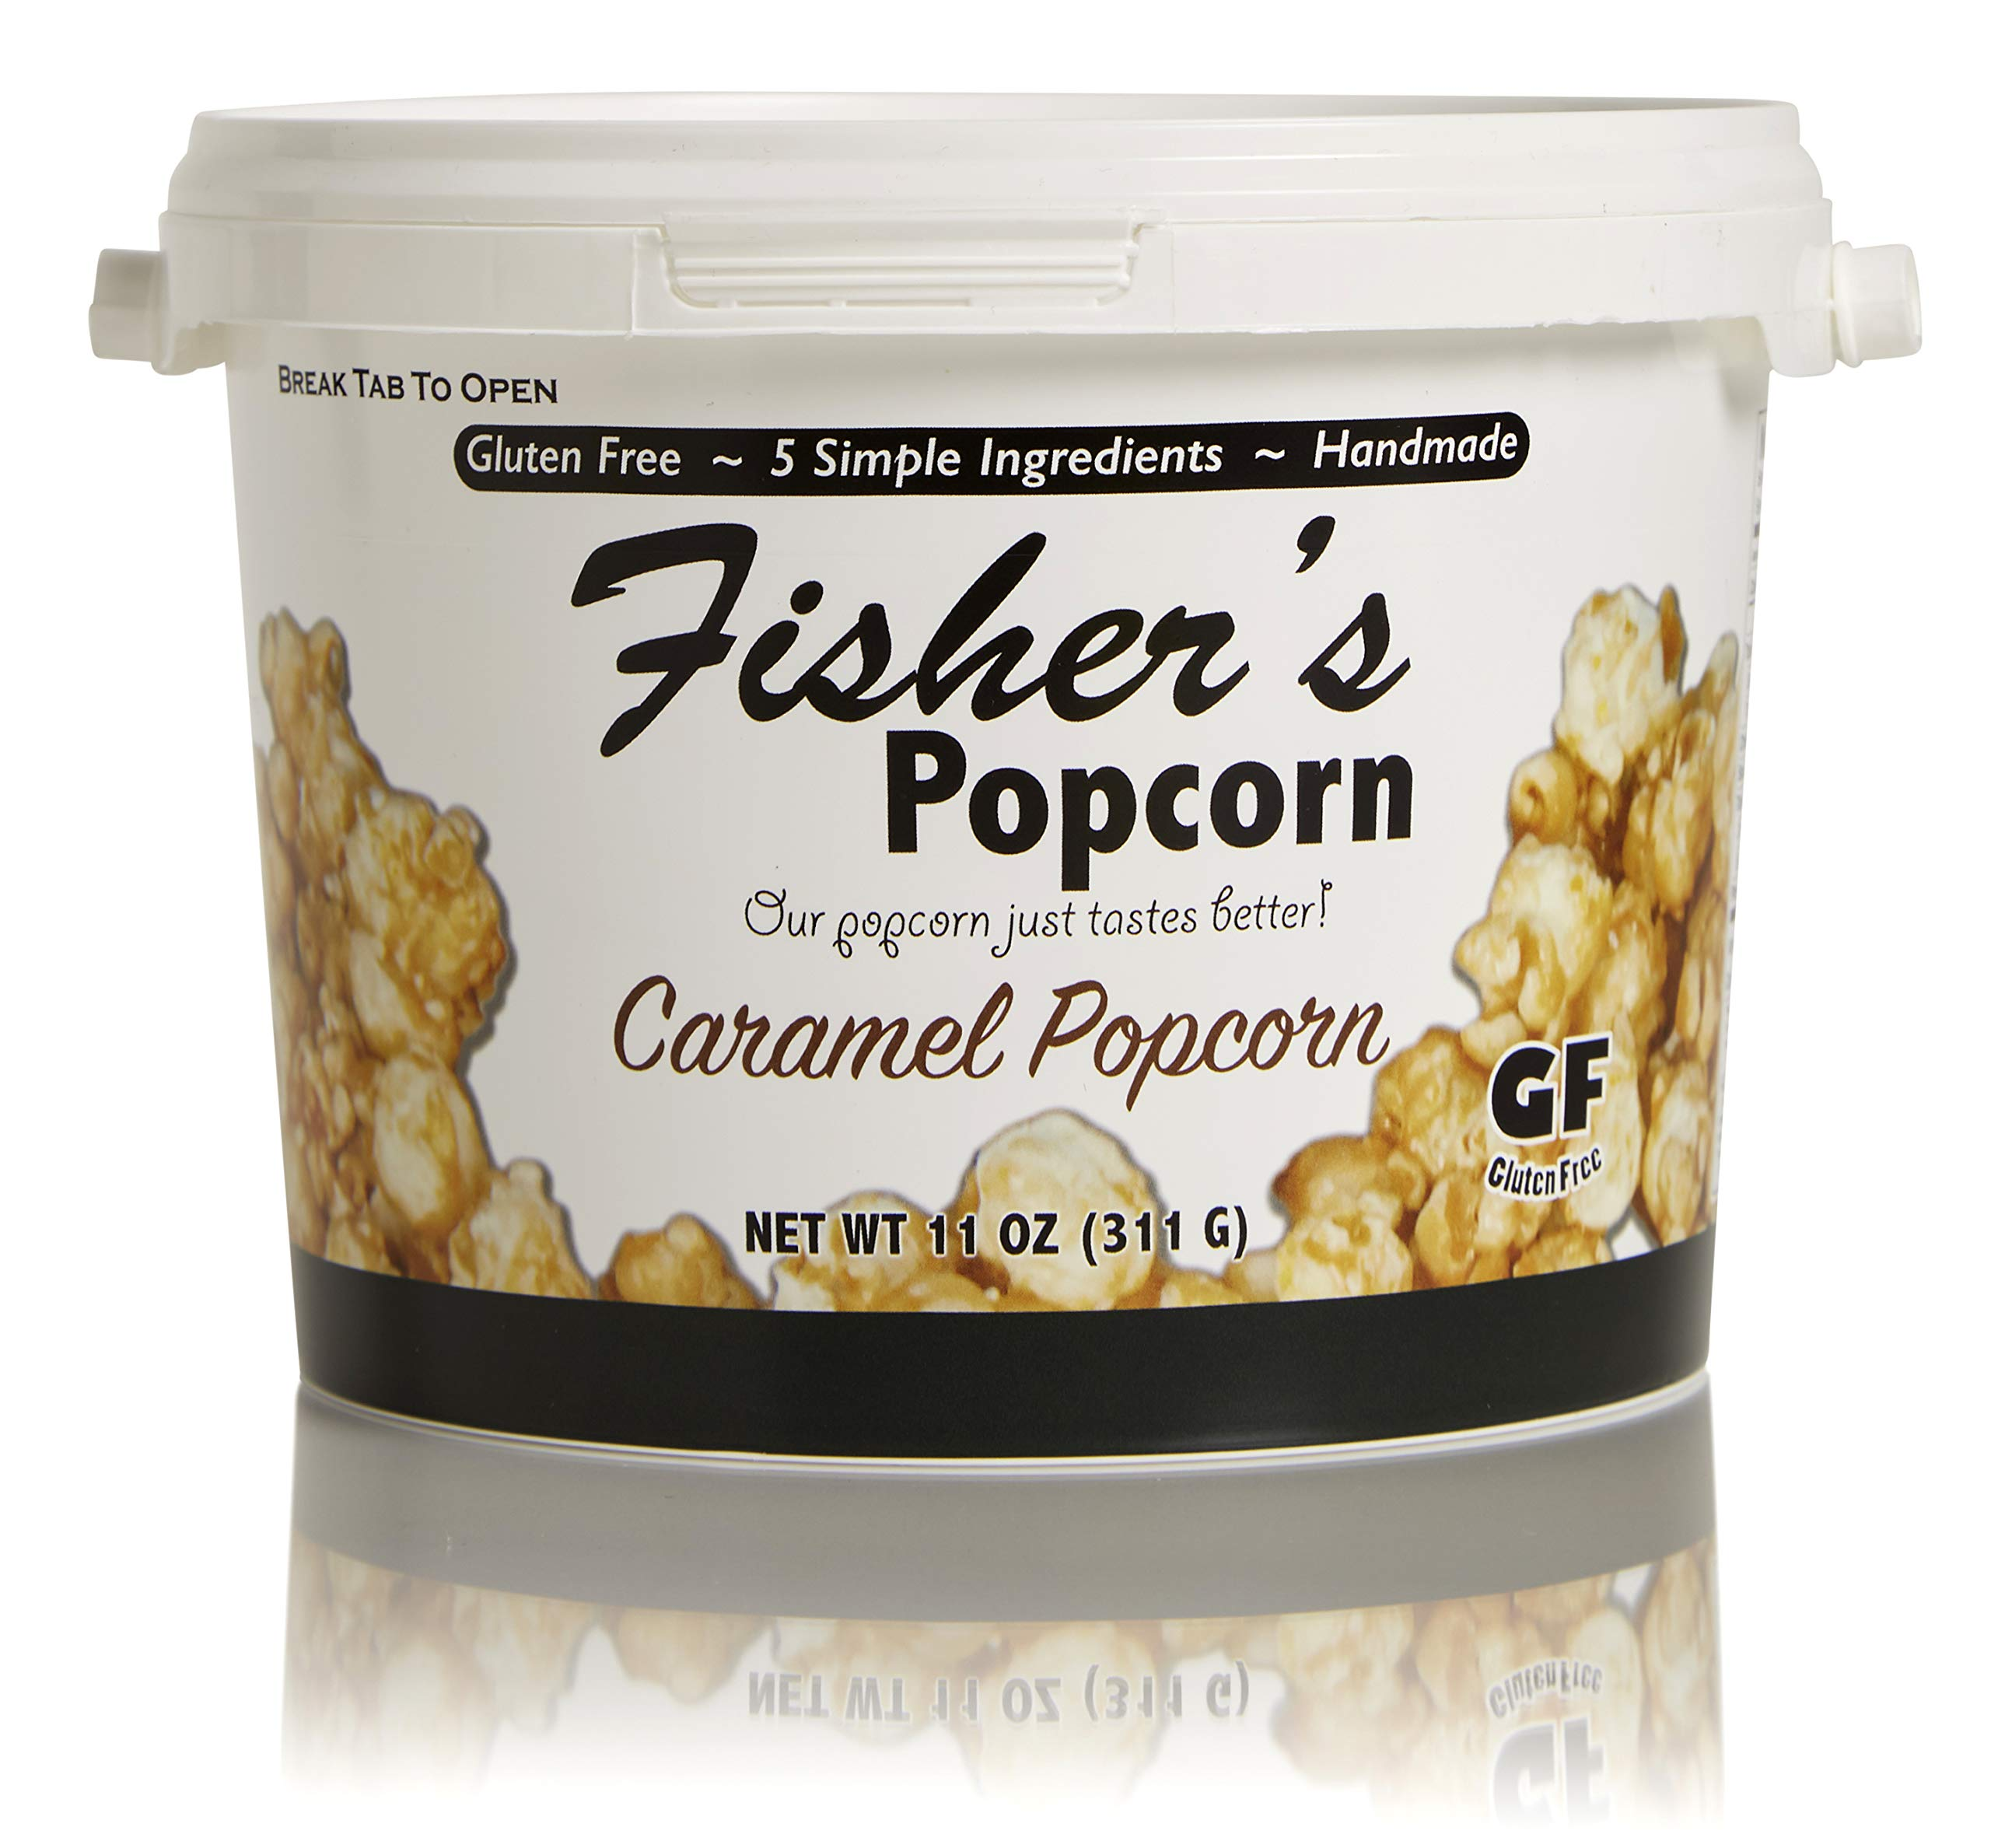 Fisher's Popcorn Caramel Popcorn, Gluten Free, 5 Simple Ingredients, Handmade, No Preservatives, No High Fructose Corn Syrup, Zero Trans Fat, 11oz Tub (1/2 Gallon) by Fisher's Popcorn